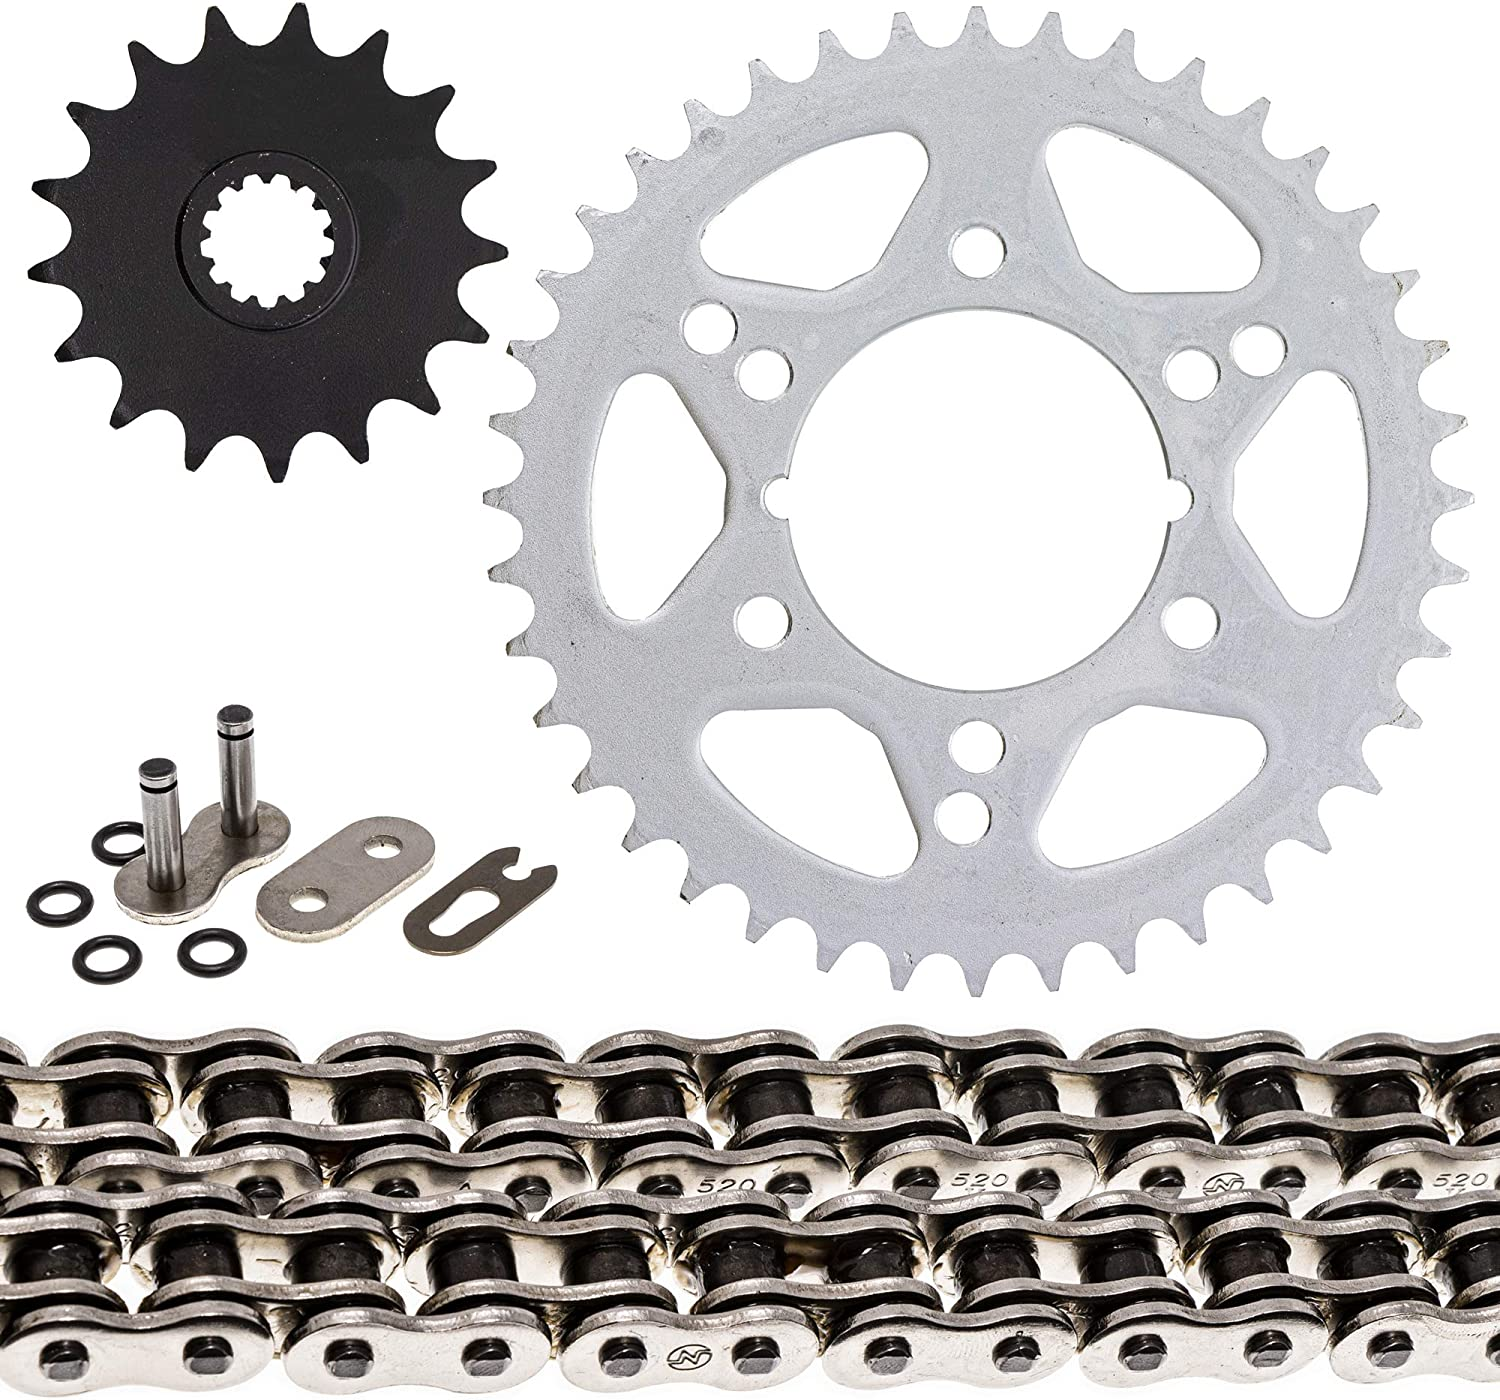 NICHE Drive Sprocket Chain Combo for Kawasaki Ninja ZX10R Front 17 Rear 40 Tooth 520V O-Ring 108 Links